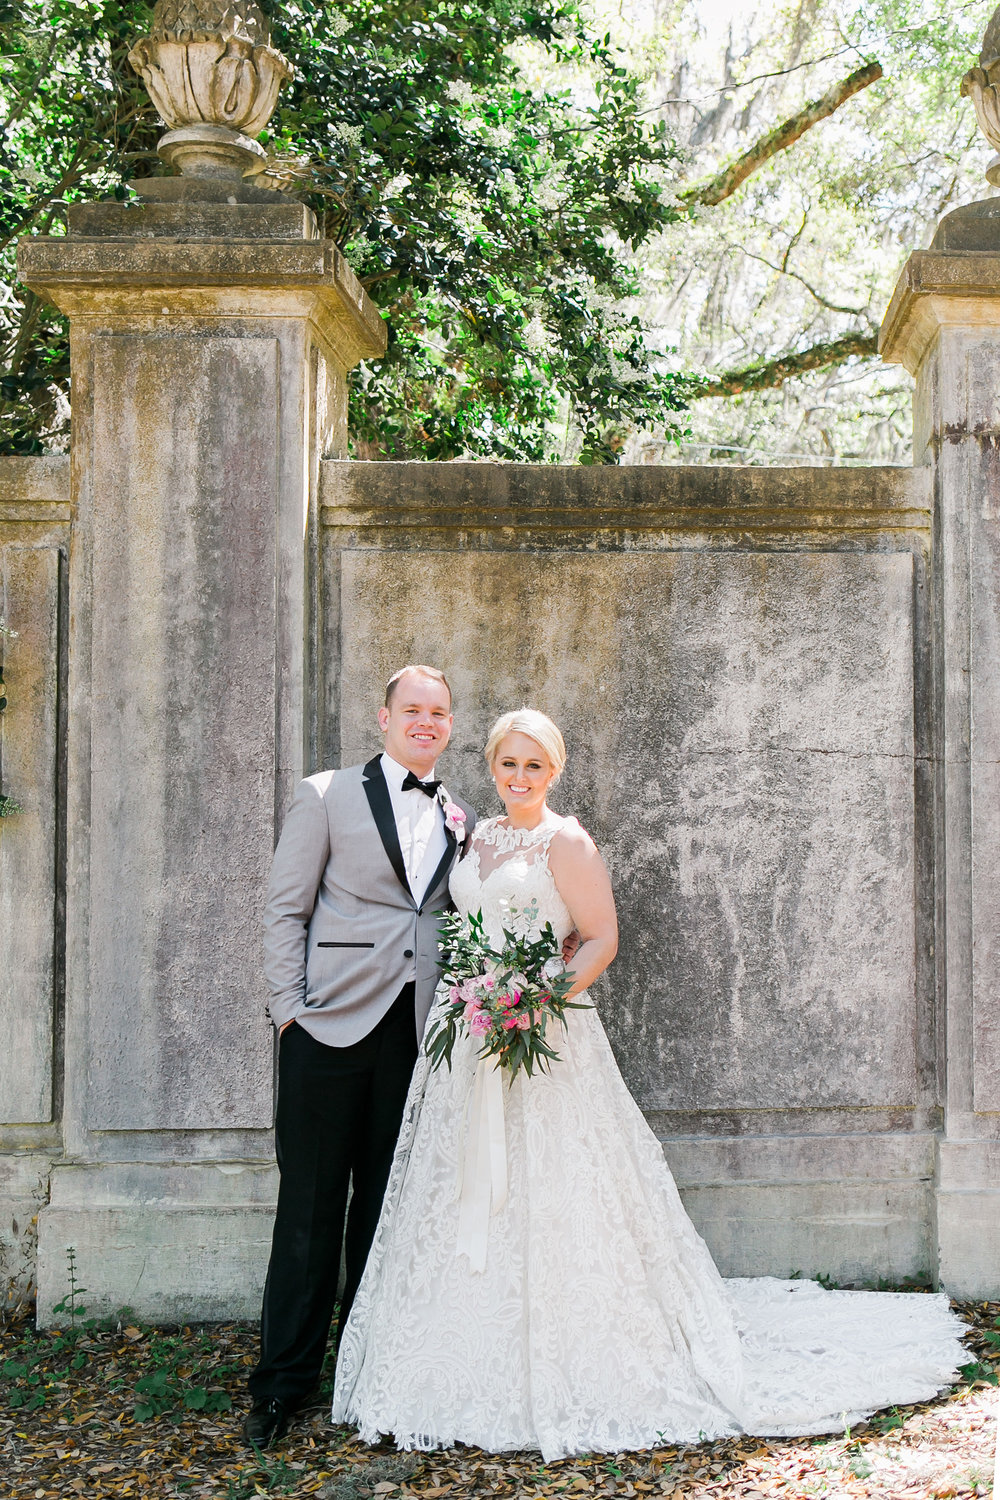 Savannah GA wedding portraits at Wormsloe Plantation by JB Marie Photography